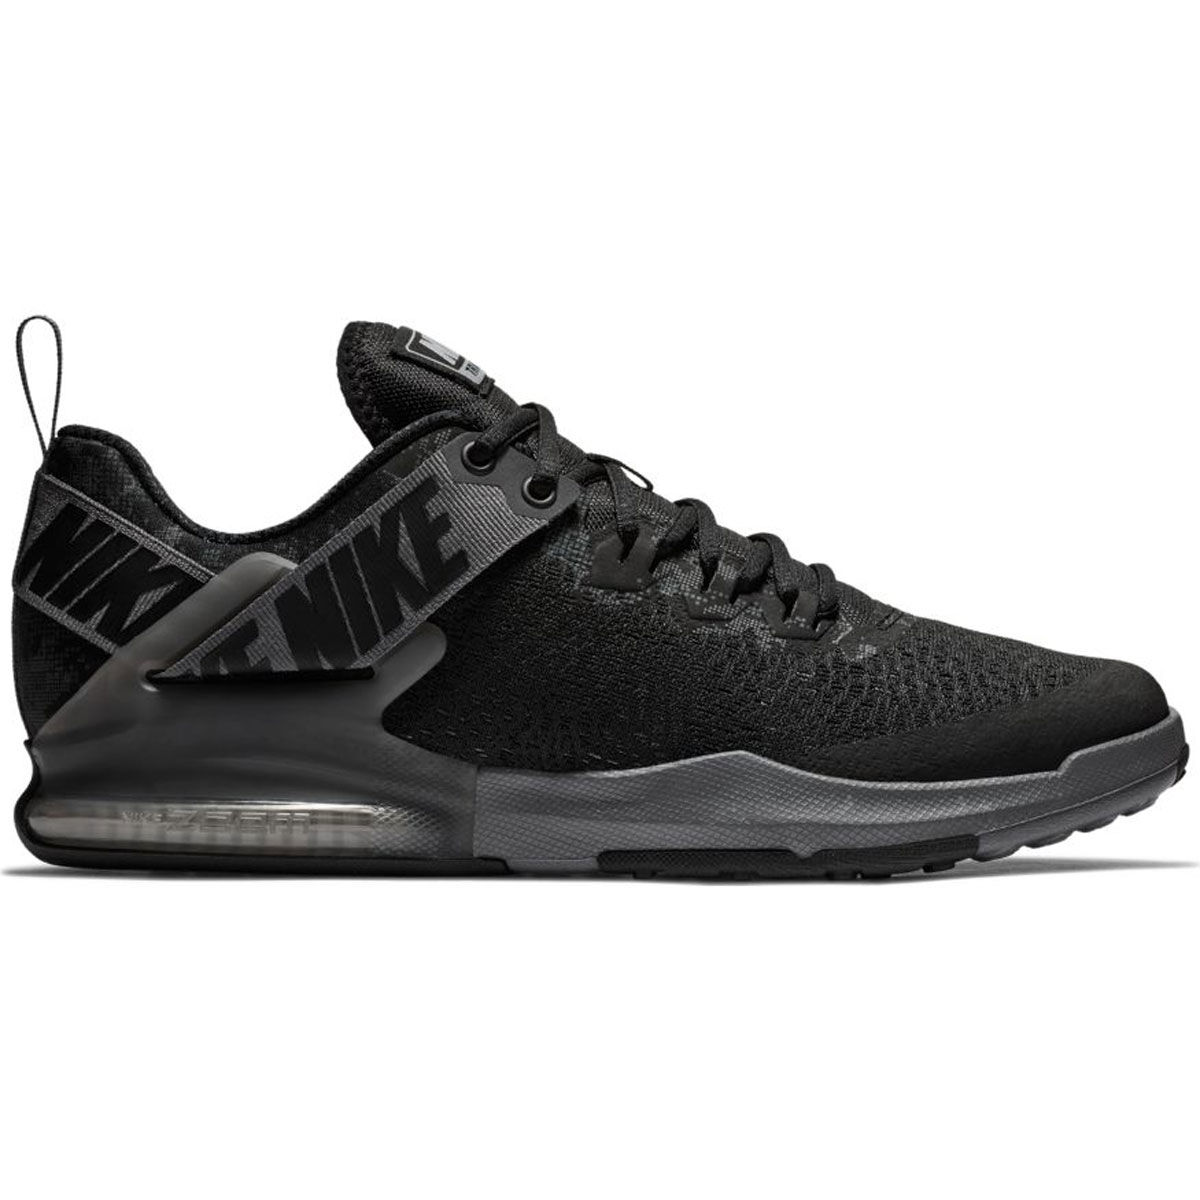 Nike Zoom Domination TR 2 Mens Training Shoe